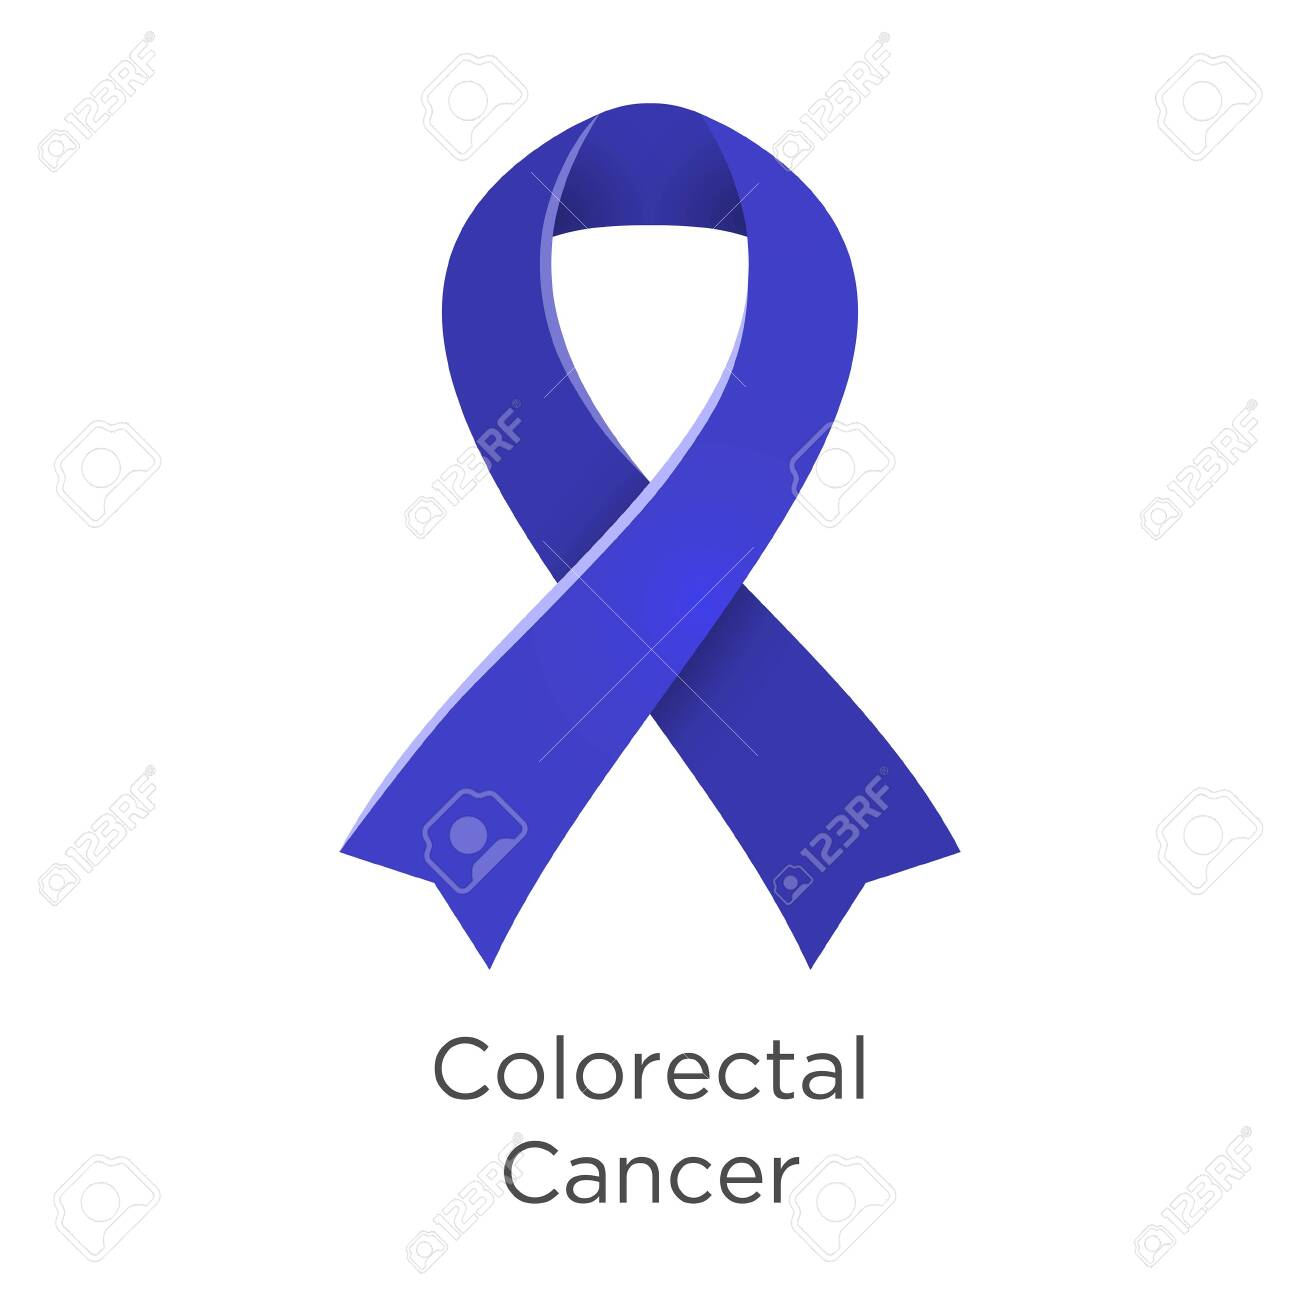 Colorectal Cancer Crc Awareness Month In March Also Known As Royalty Free Cliparts Vectors And Stock Illustration Image 122107053